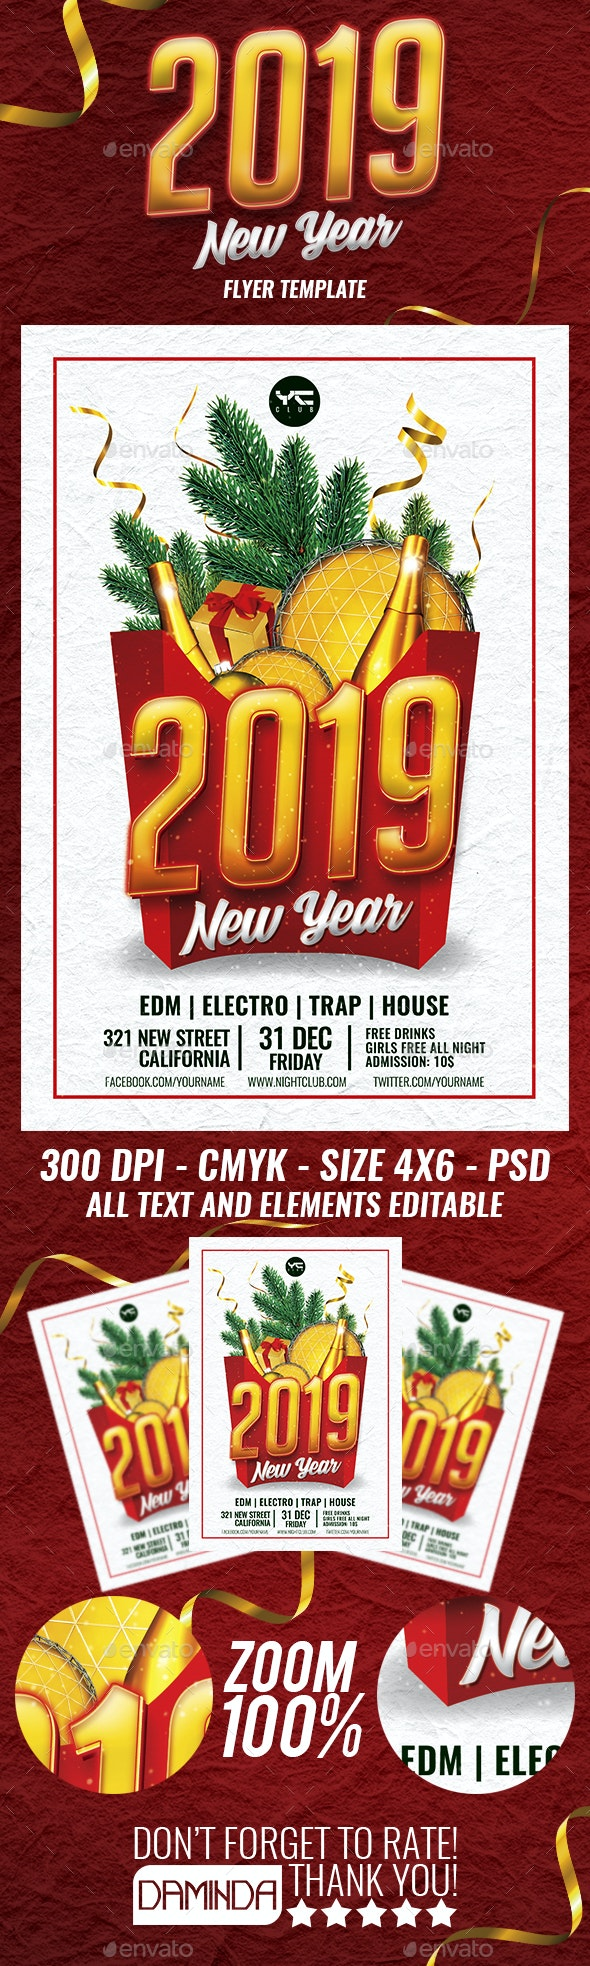 Happy New Year 2019 Flyer Template - Holidays Events